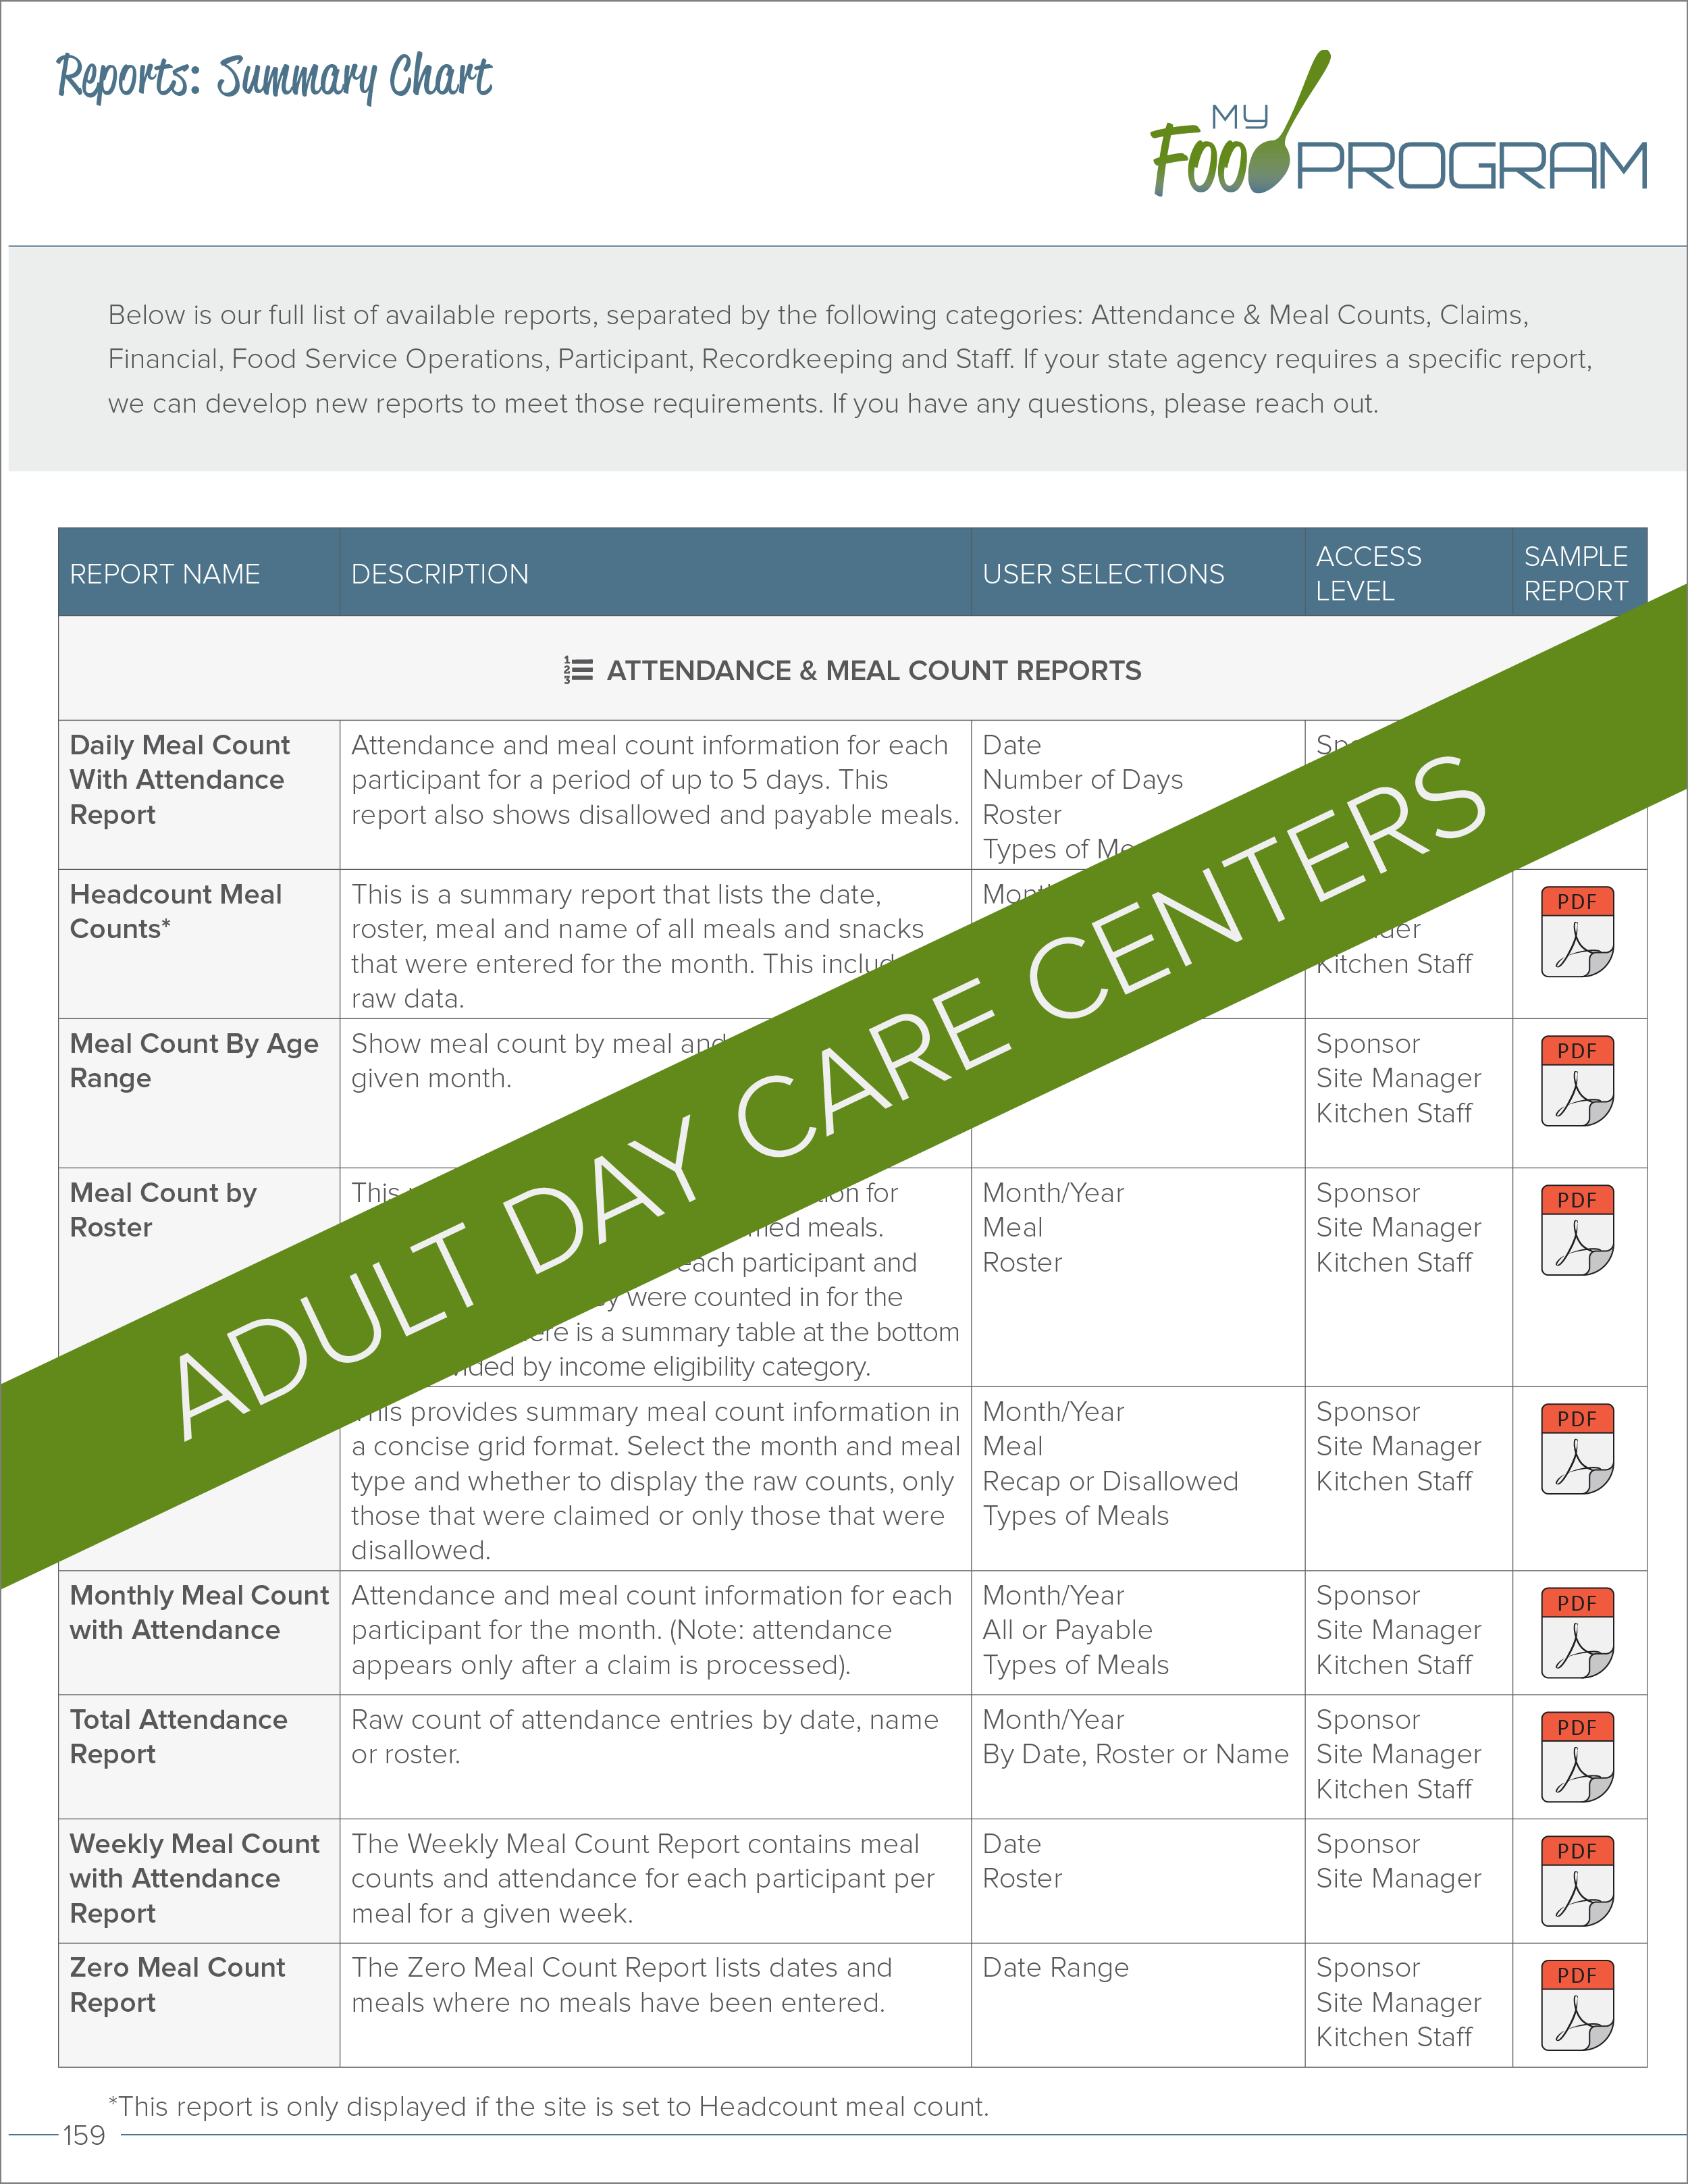 Adult Day Care Centers Reports Summary Chart